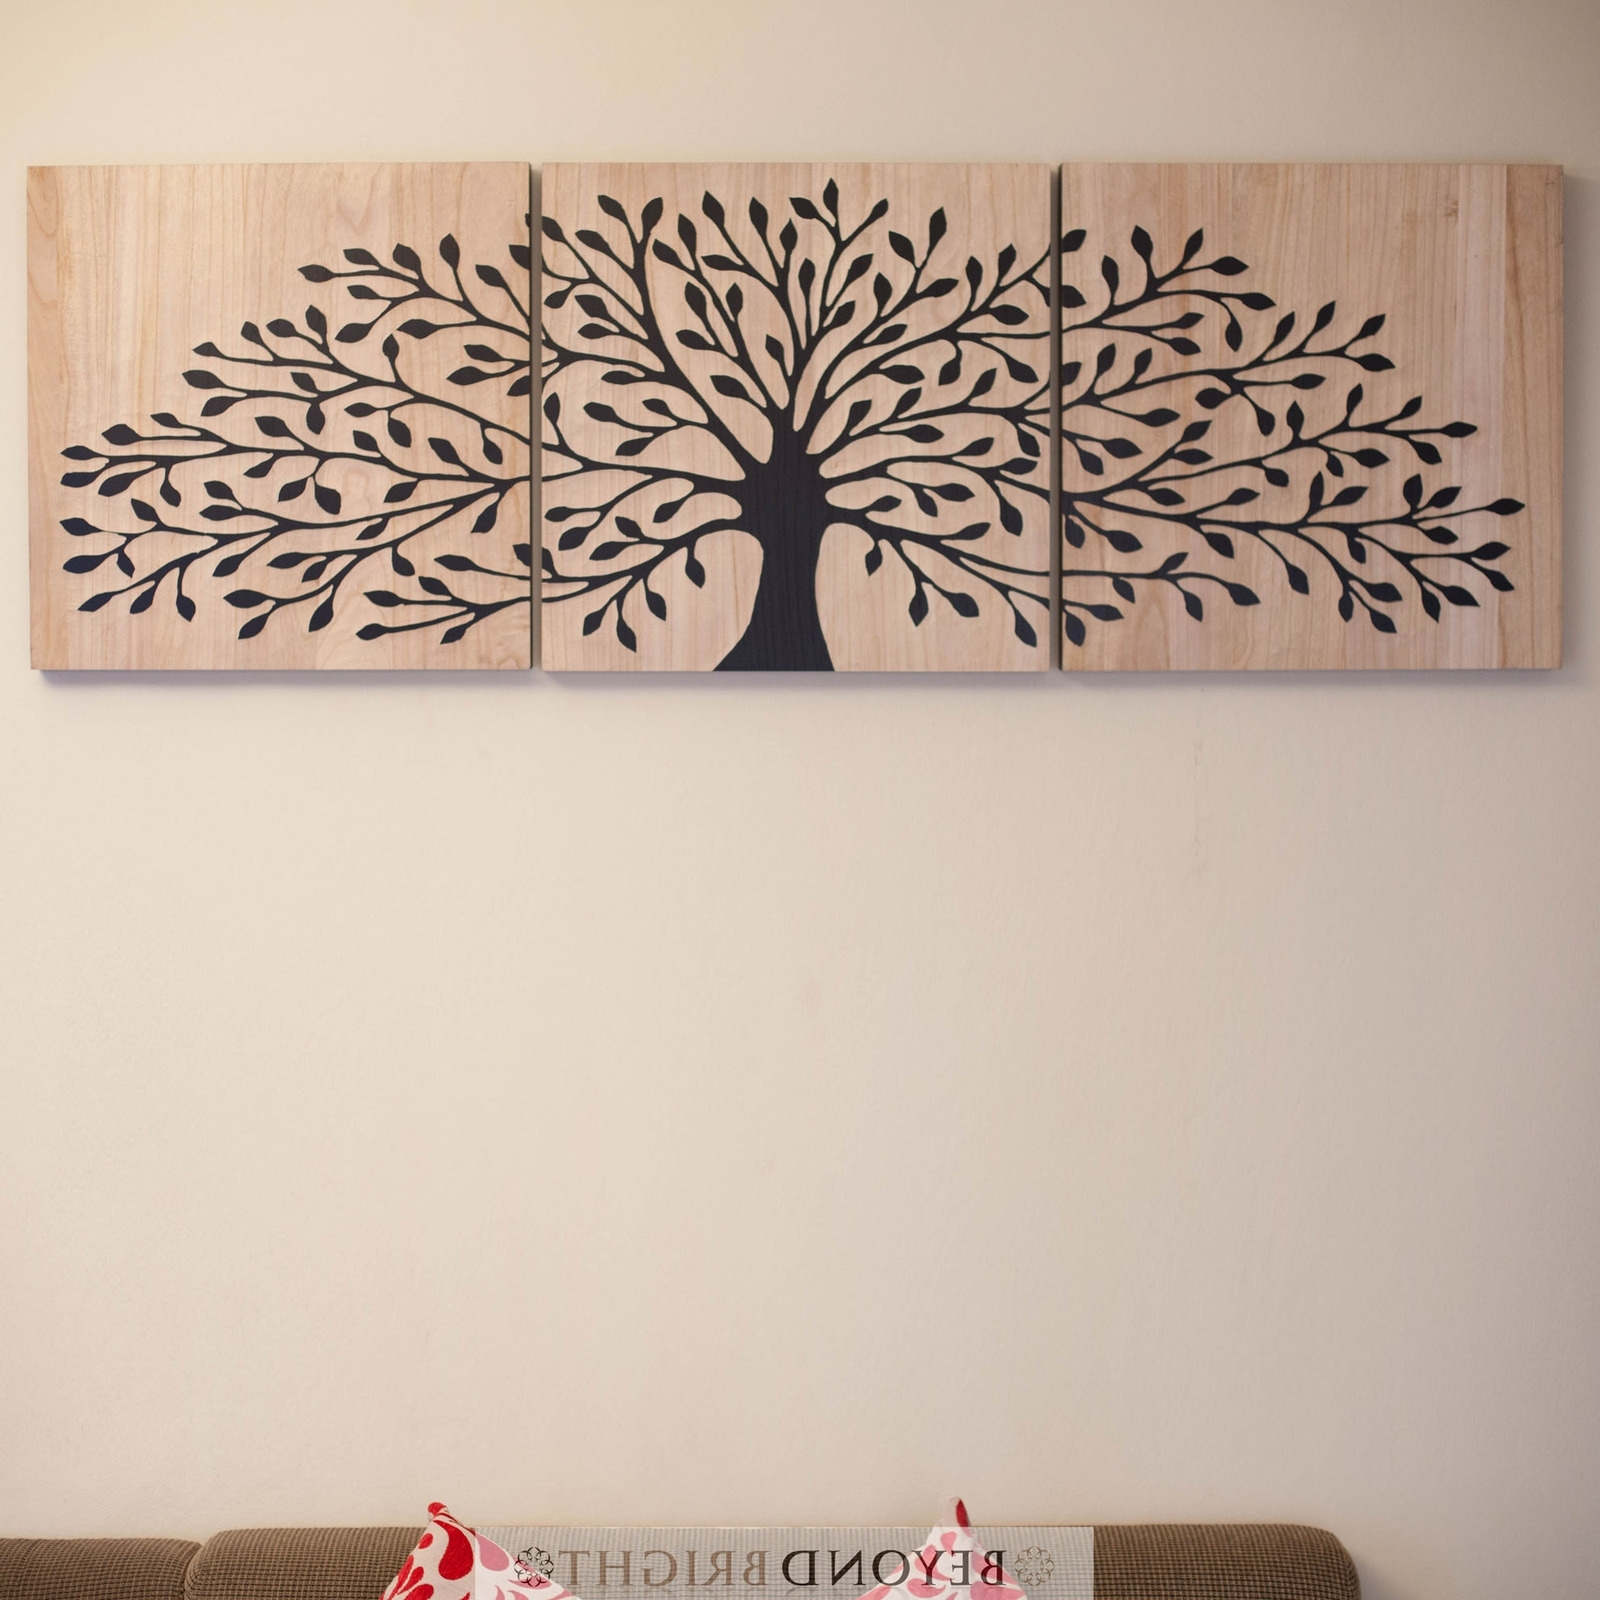 Tree Of Life Wooden Timber Carved Wall Art Blck Mangowood Carving Throughout Most Recently Released Tree Of Life Wall Art (View 11 of 15)